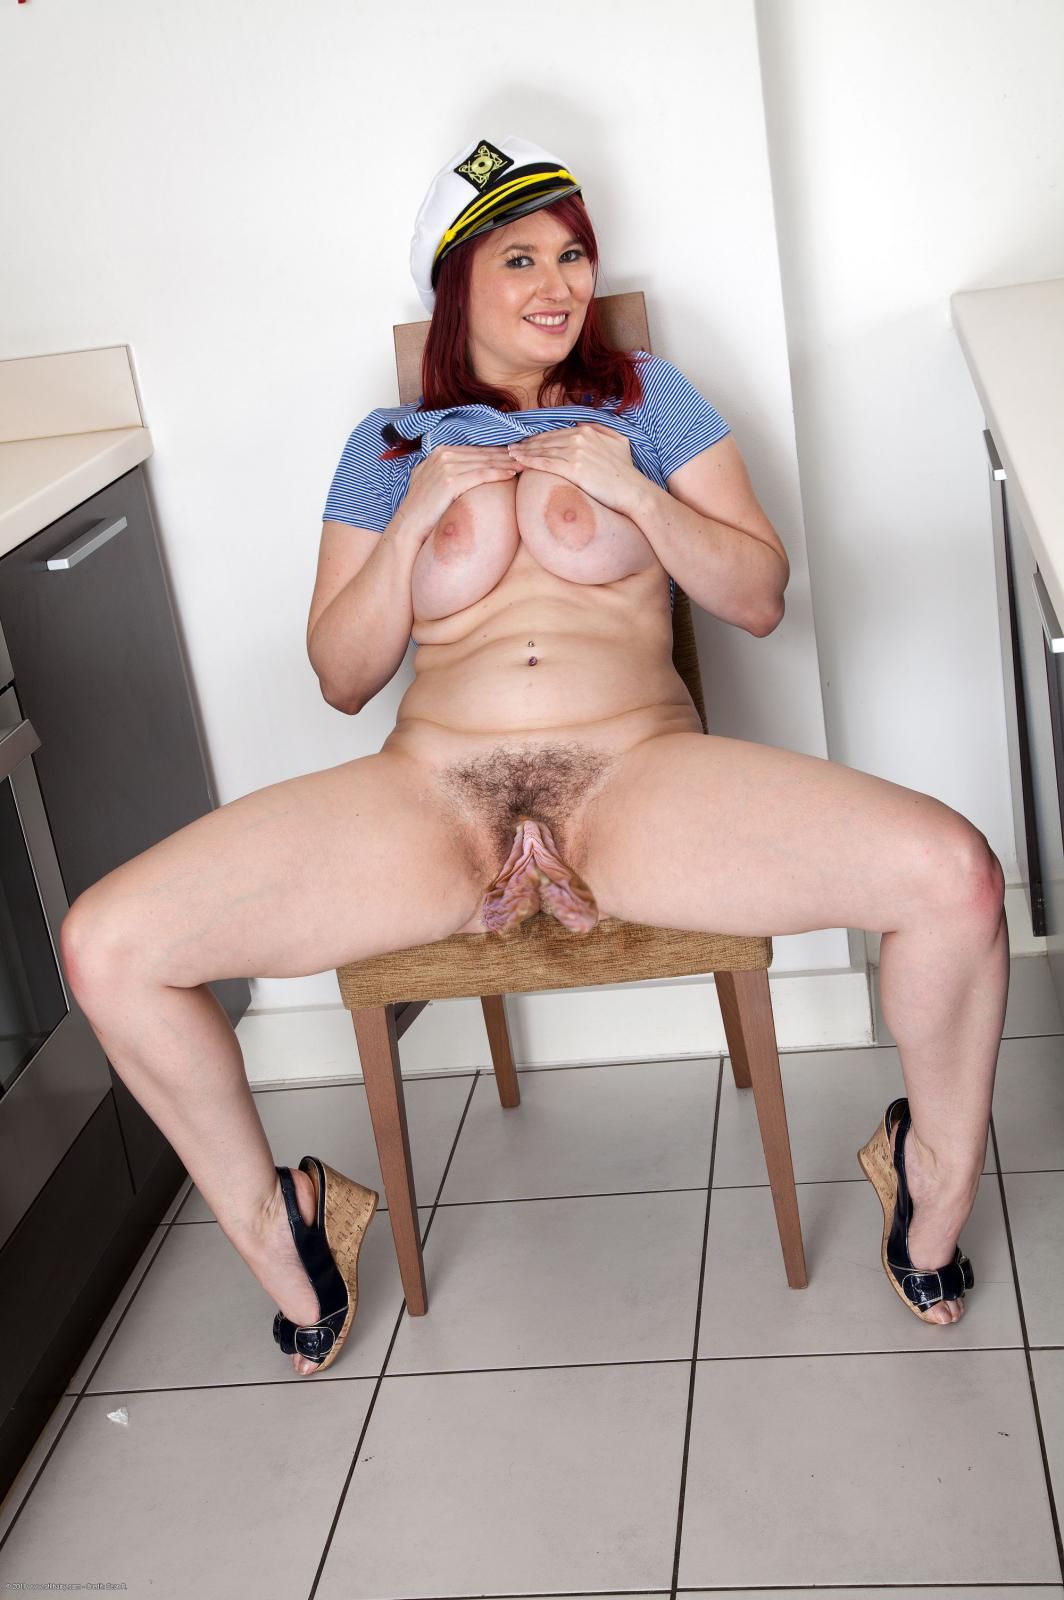 Monsterpussys facking white monster cocks free download fucks photo